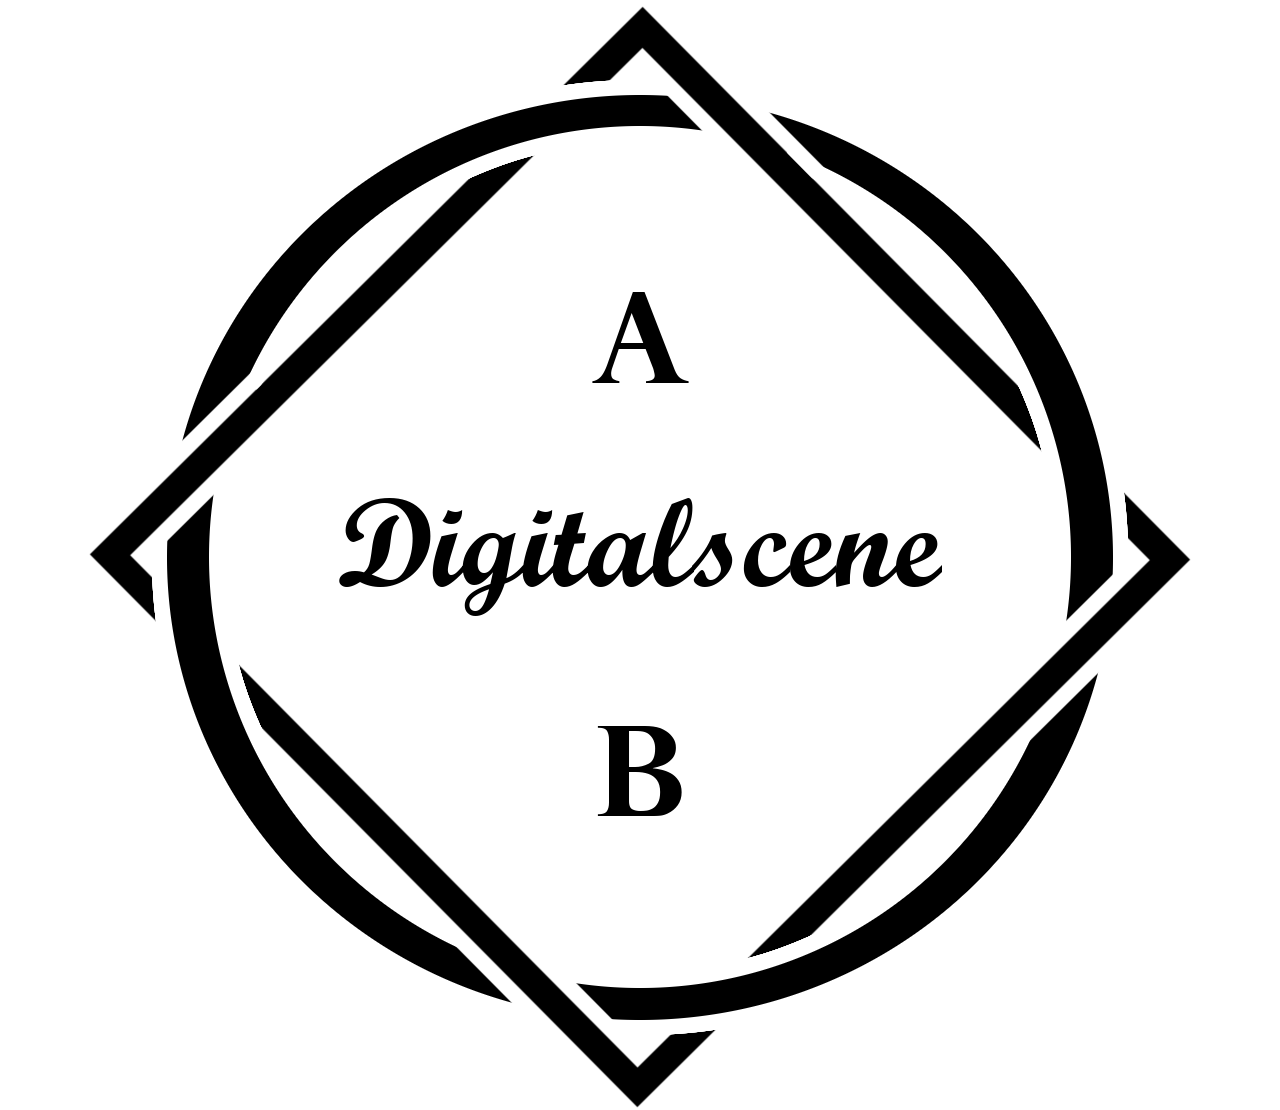 DigitalScene.de